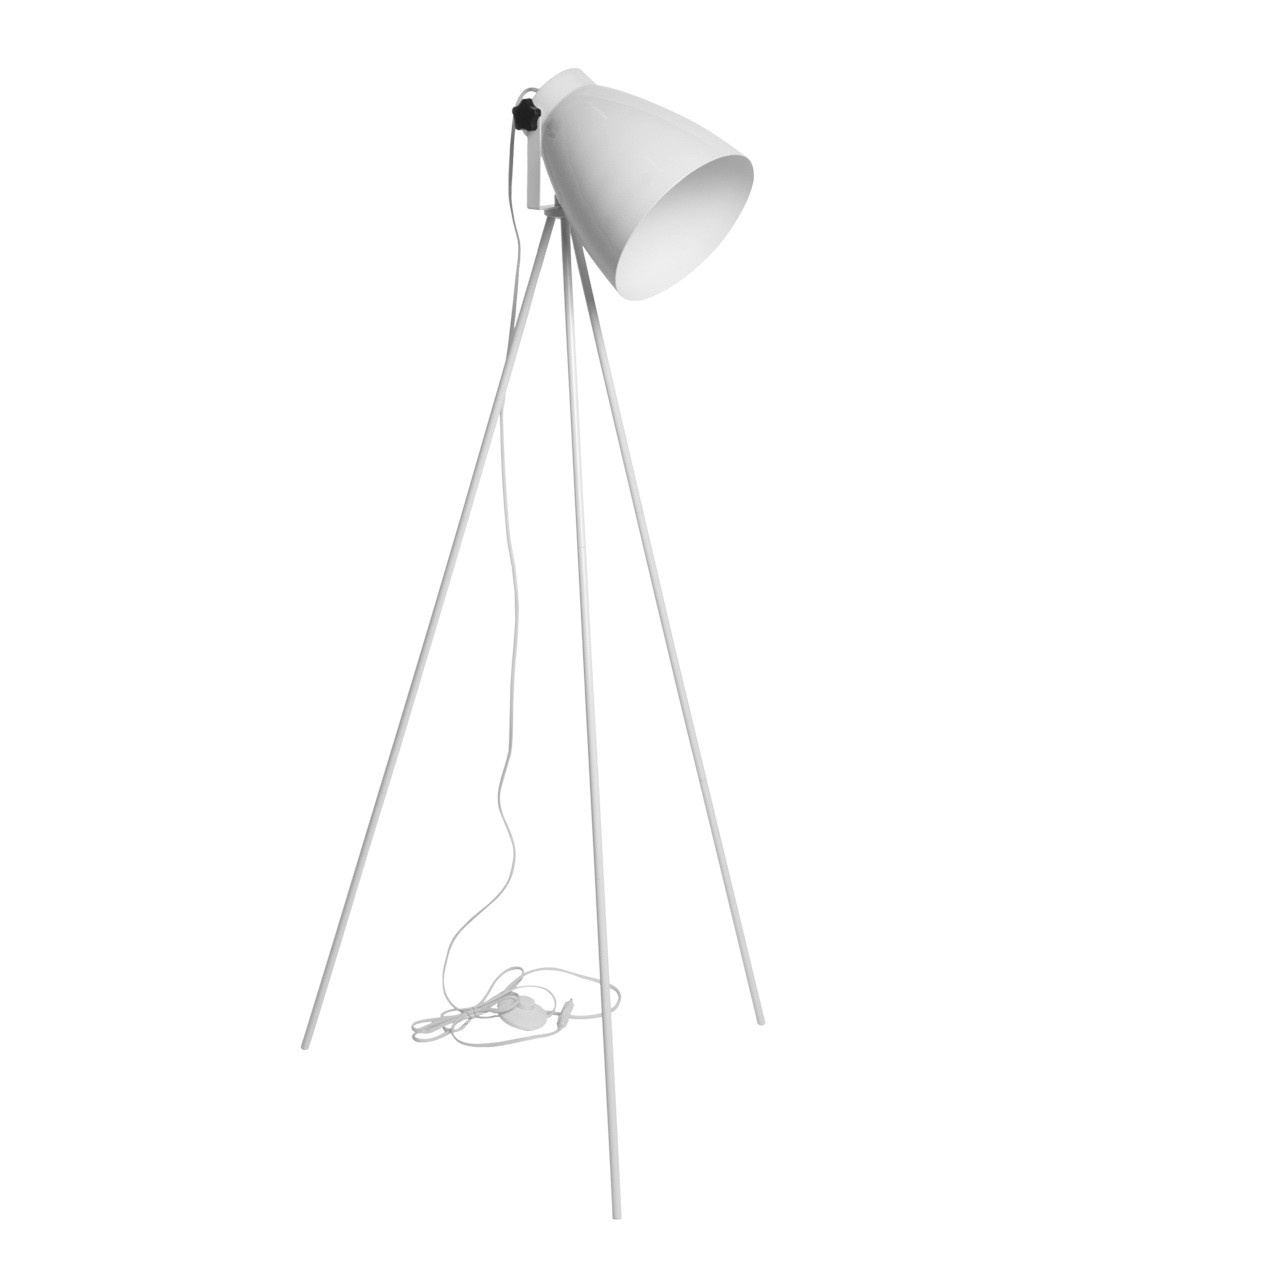 Modern white floor lamp - The Color White S Association With Cleanliness Will Make A Fantastic Addition To Any Kitchen Modern White Floor Lamp